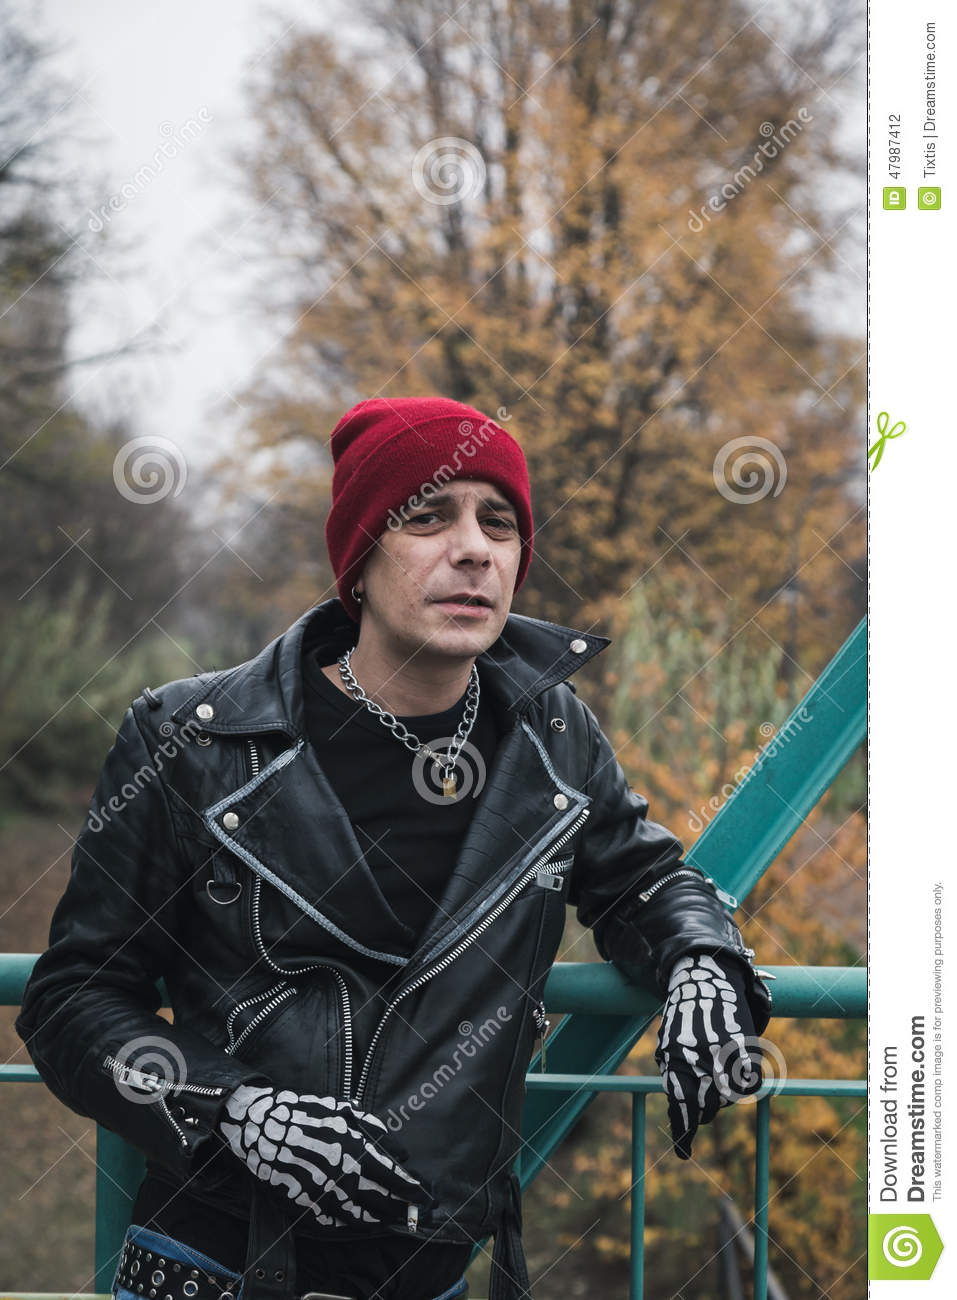 24f03e14223 Punk guy posing in the city streets stock photo image of cool jpg 957x1300 Punk  guy